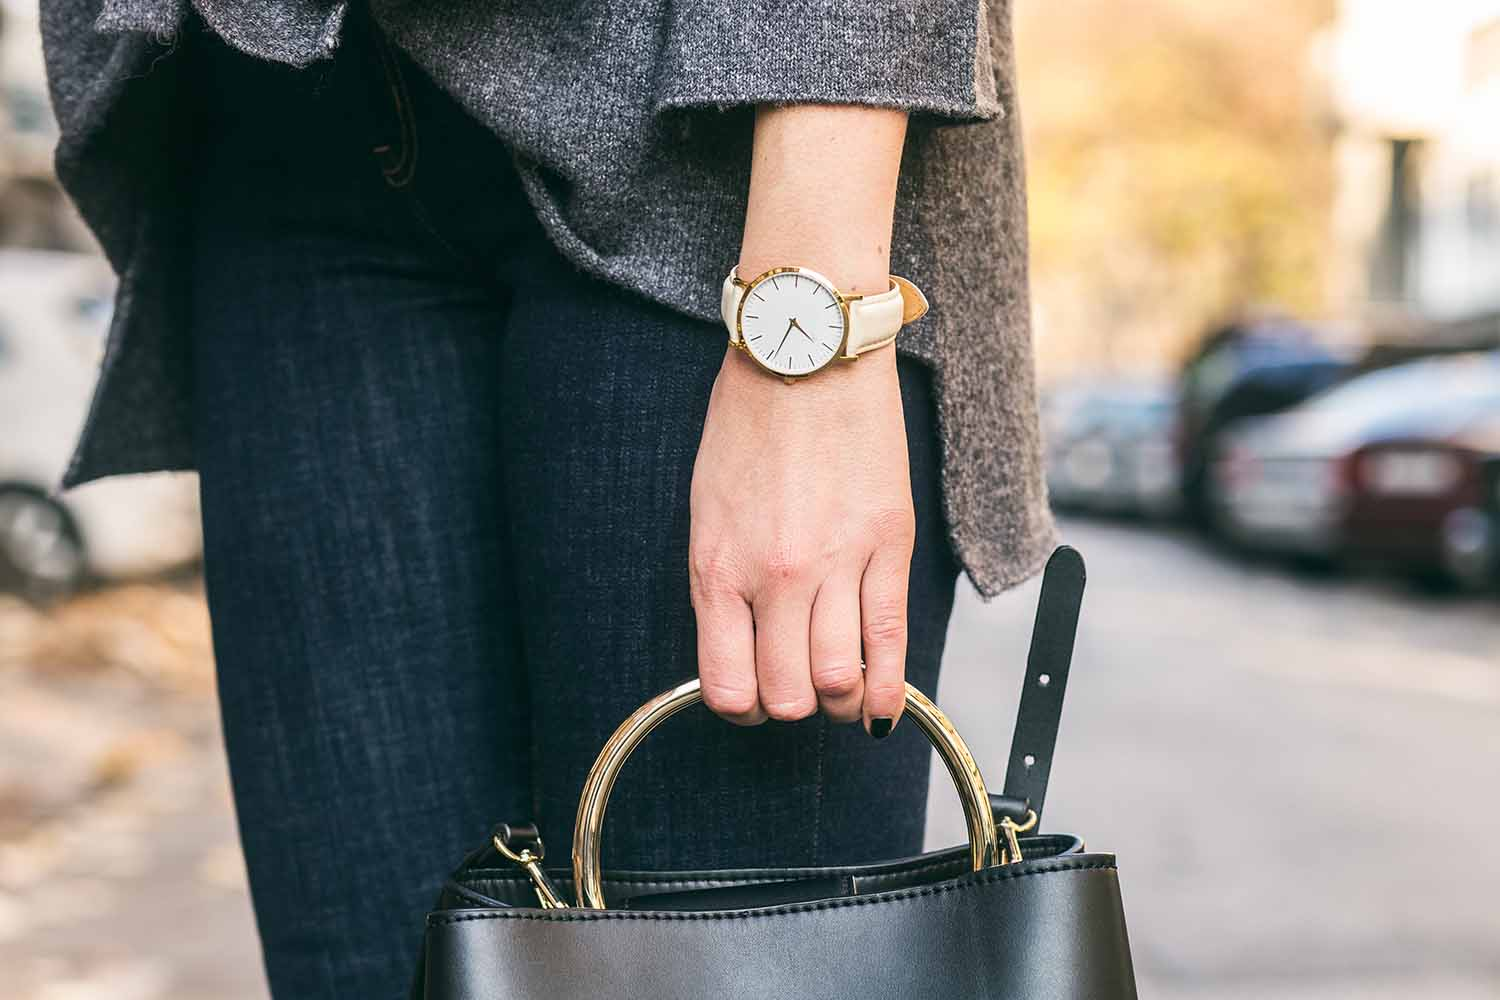 wear a watch for ladies